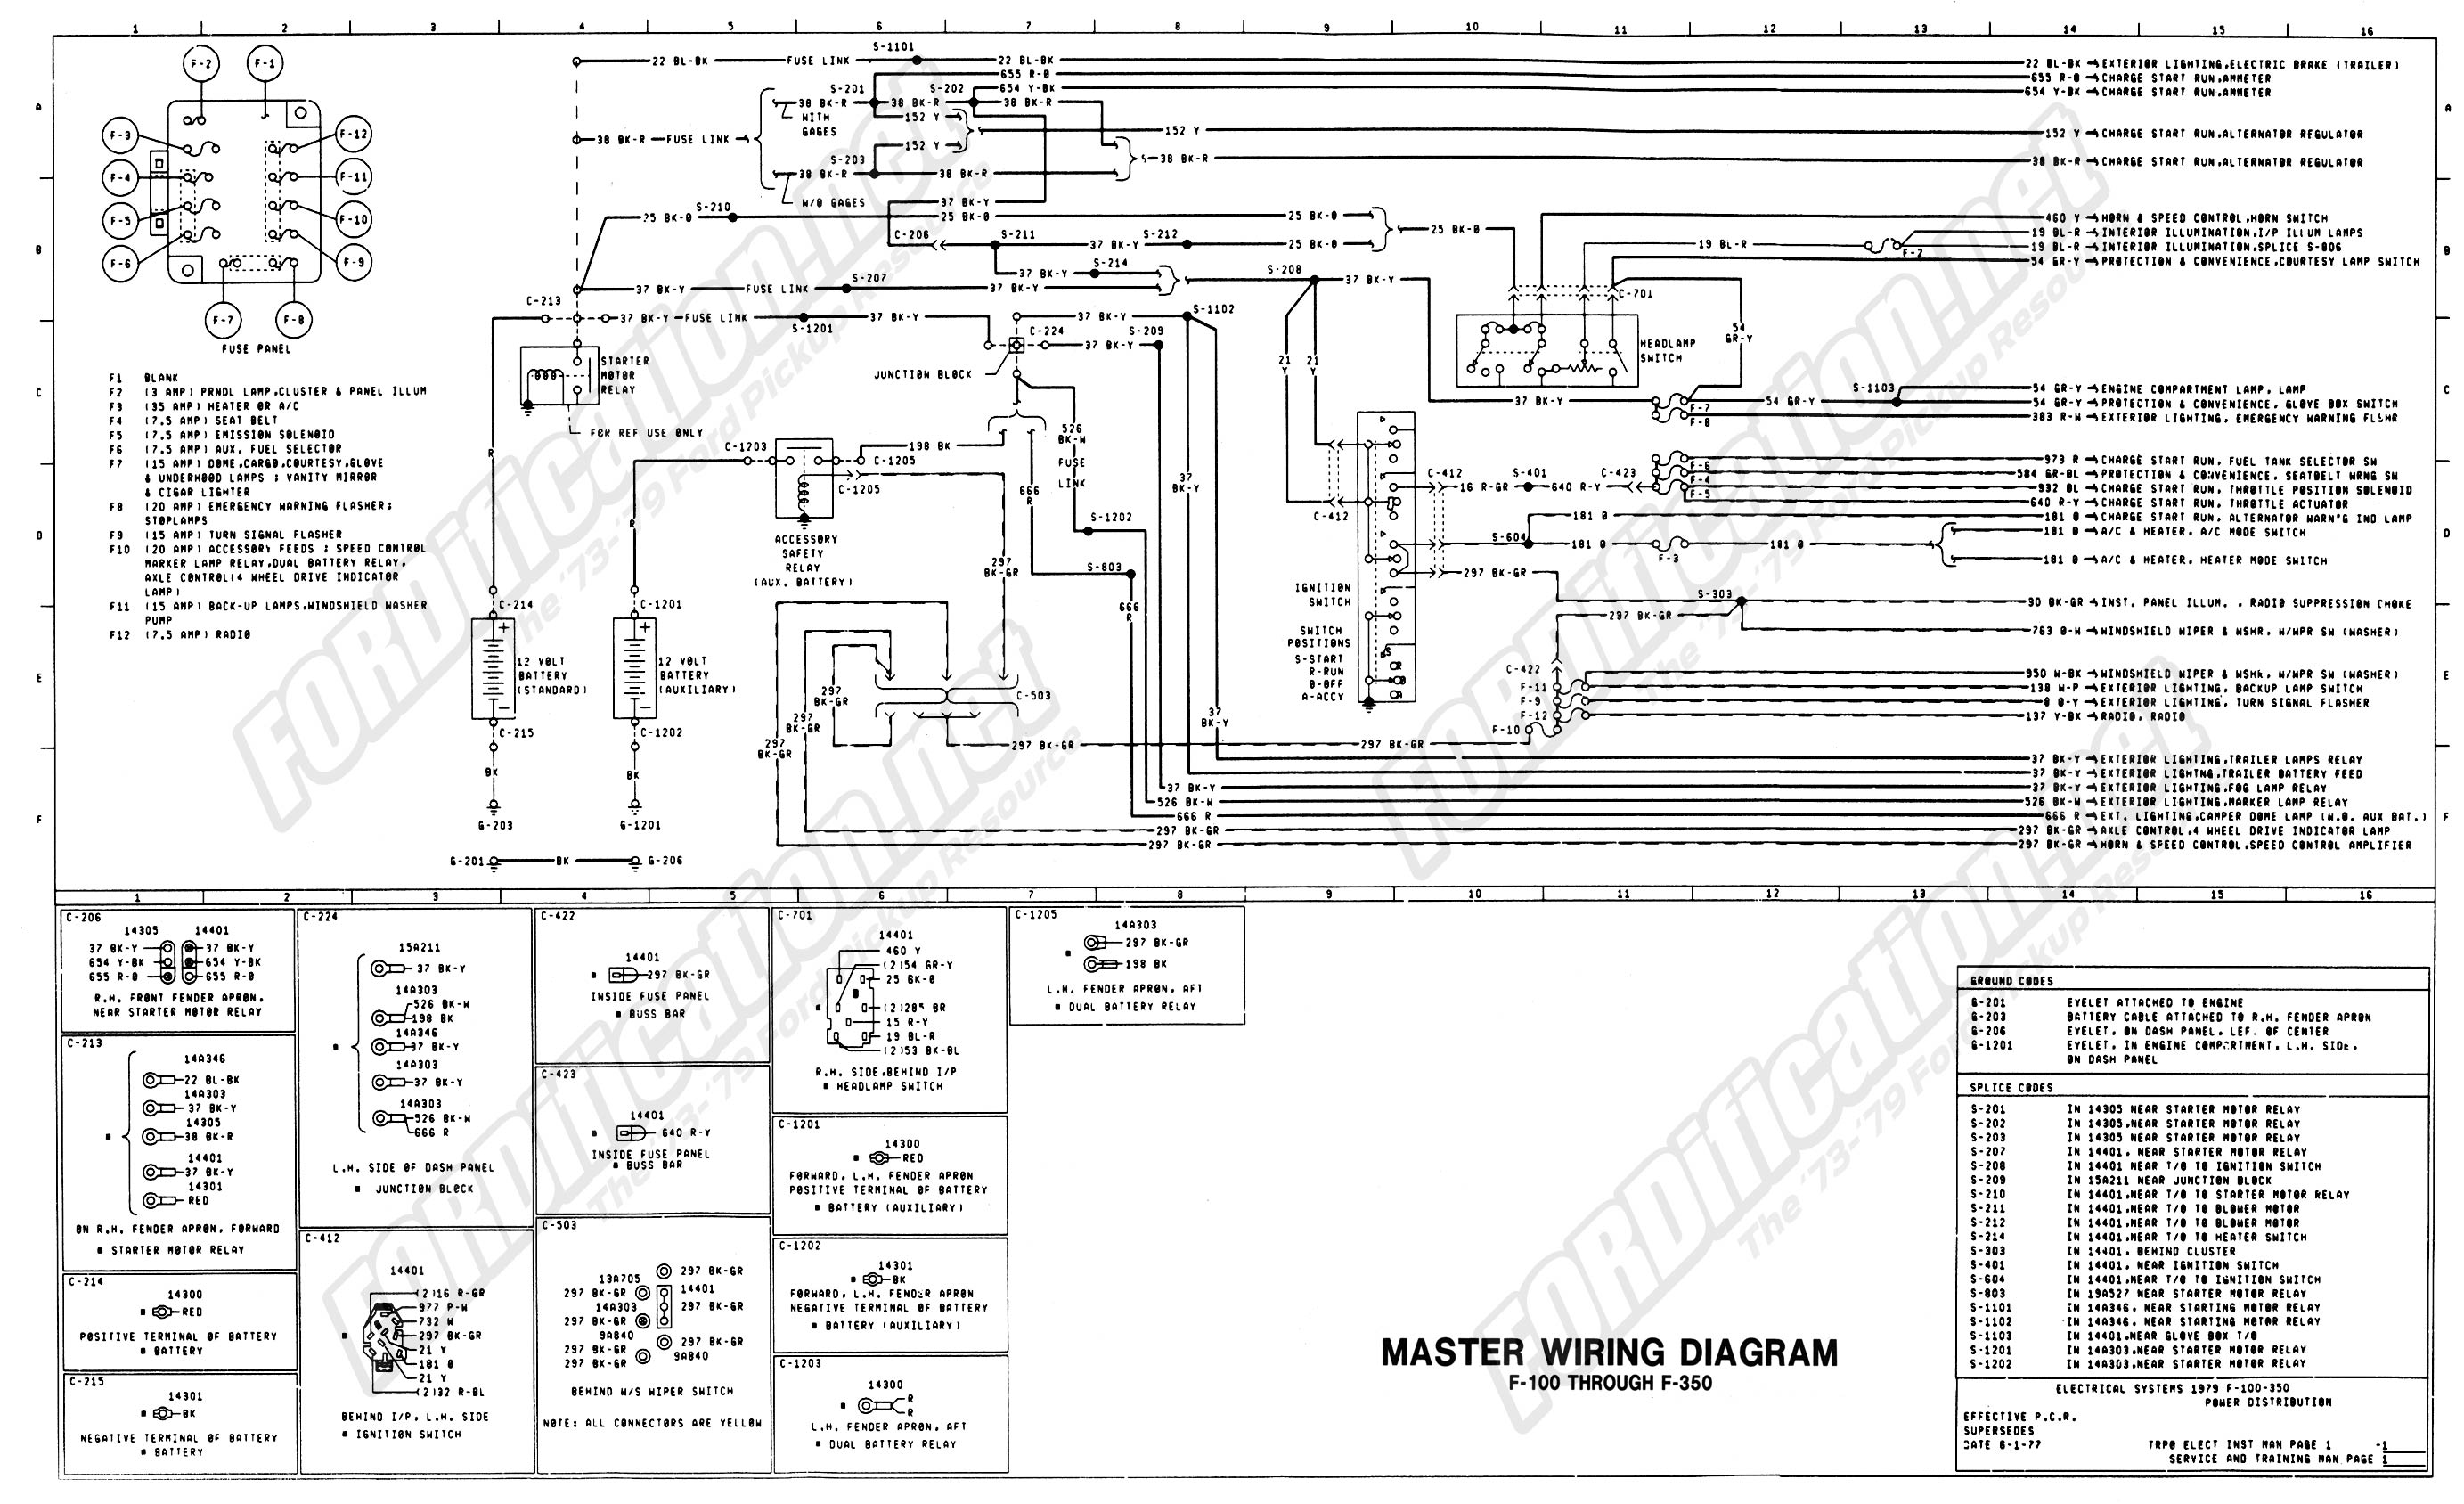 1973 1979 ford truck wiring diagrams schematics fordification net rh fordification net 1977 ford f150 tail light wiring diagram 1977 ford f150 ignition switch wiring diagram